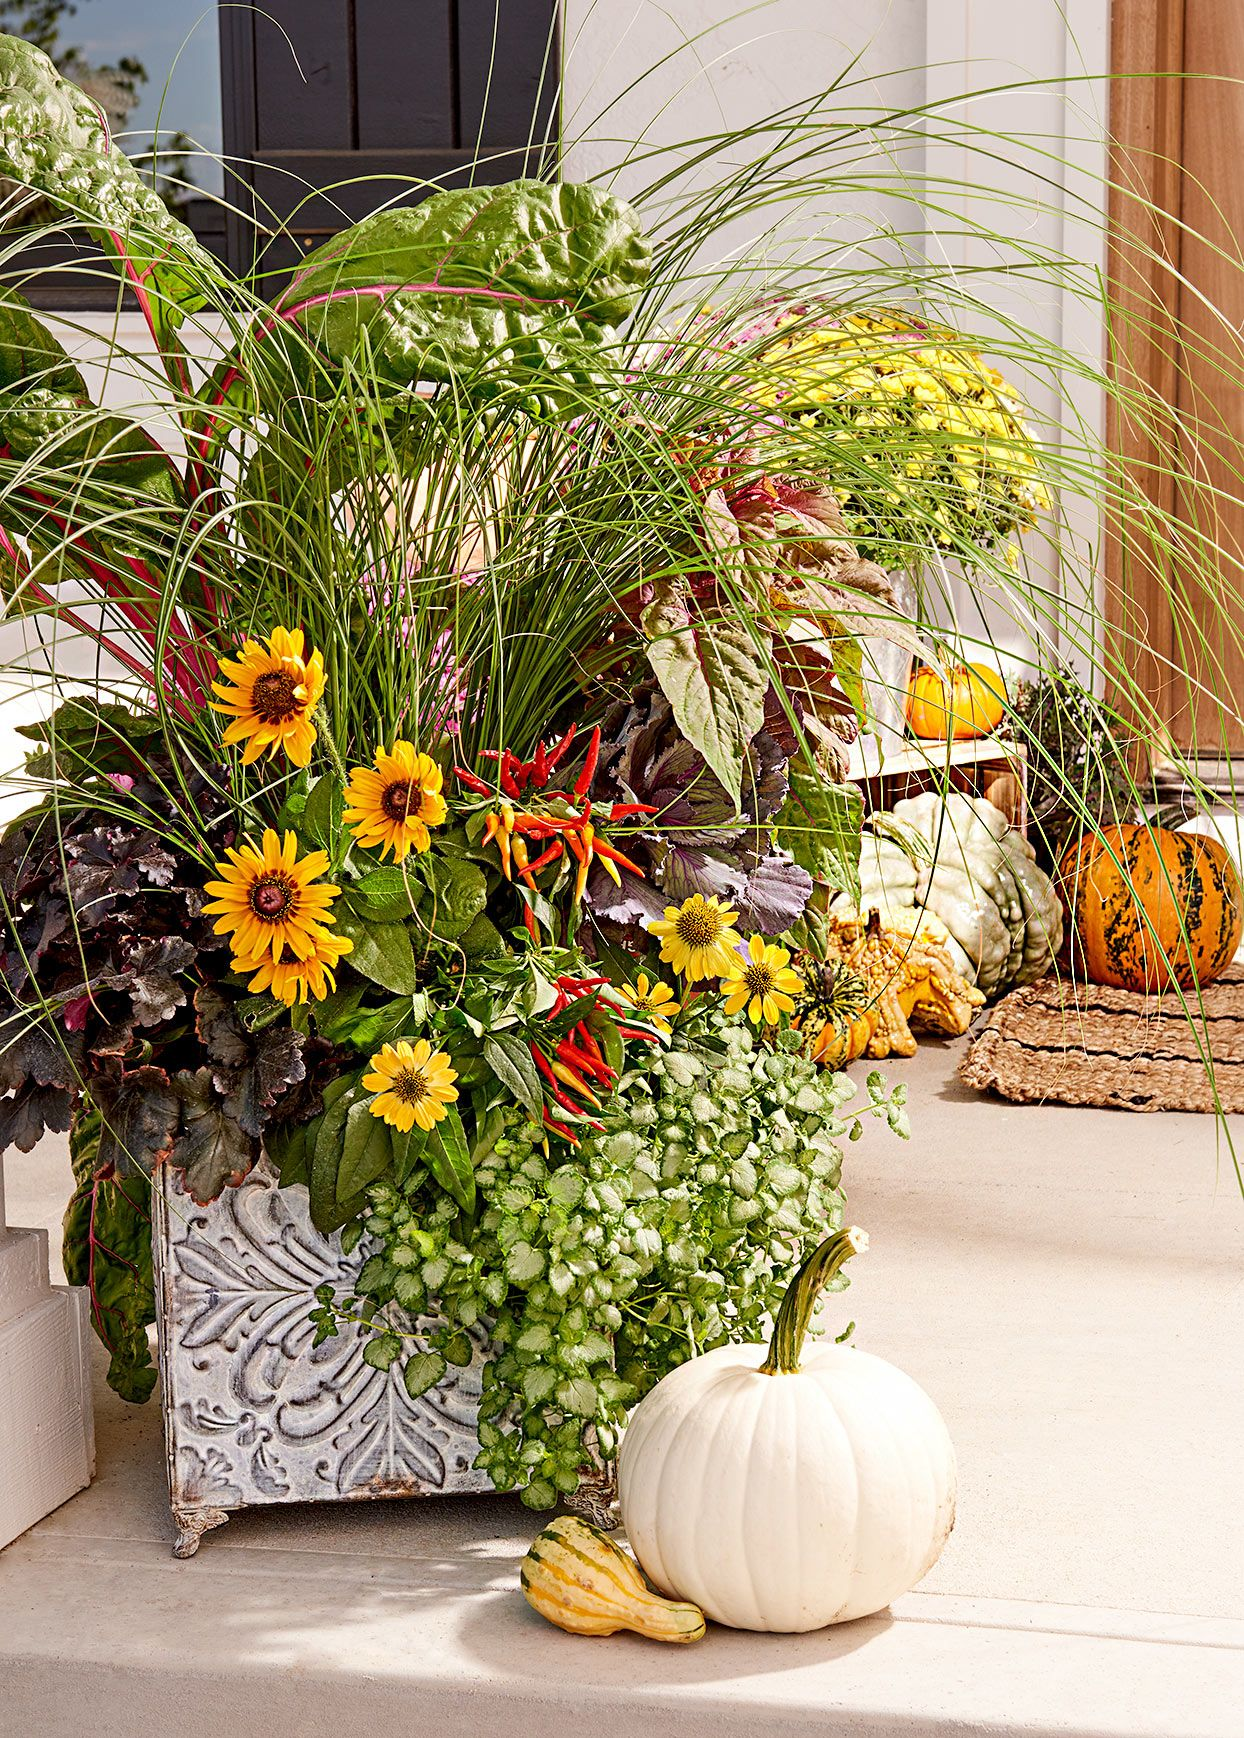 6 Tips for Creating a PicturePerfect Container Garden Every Time